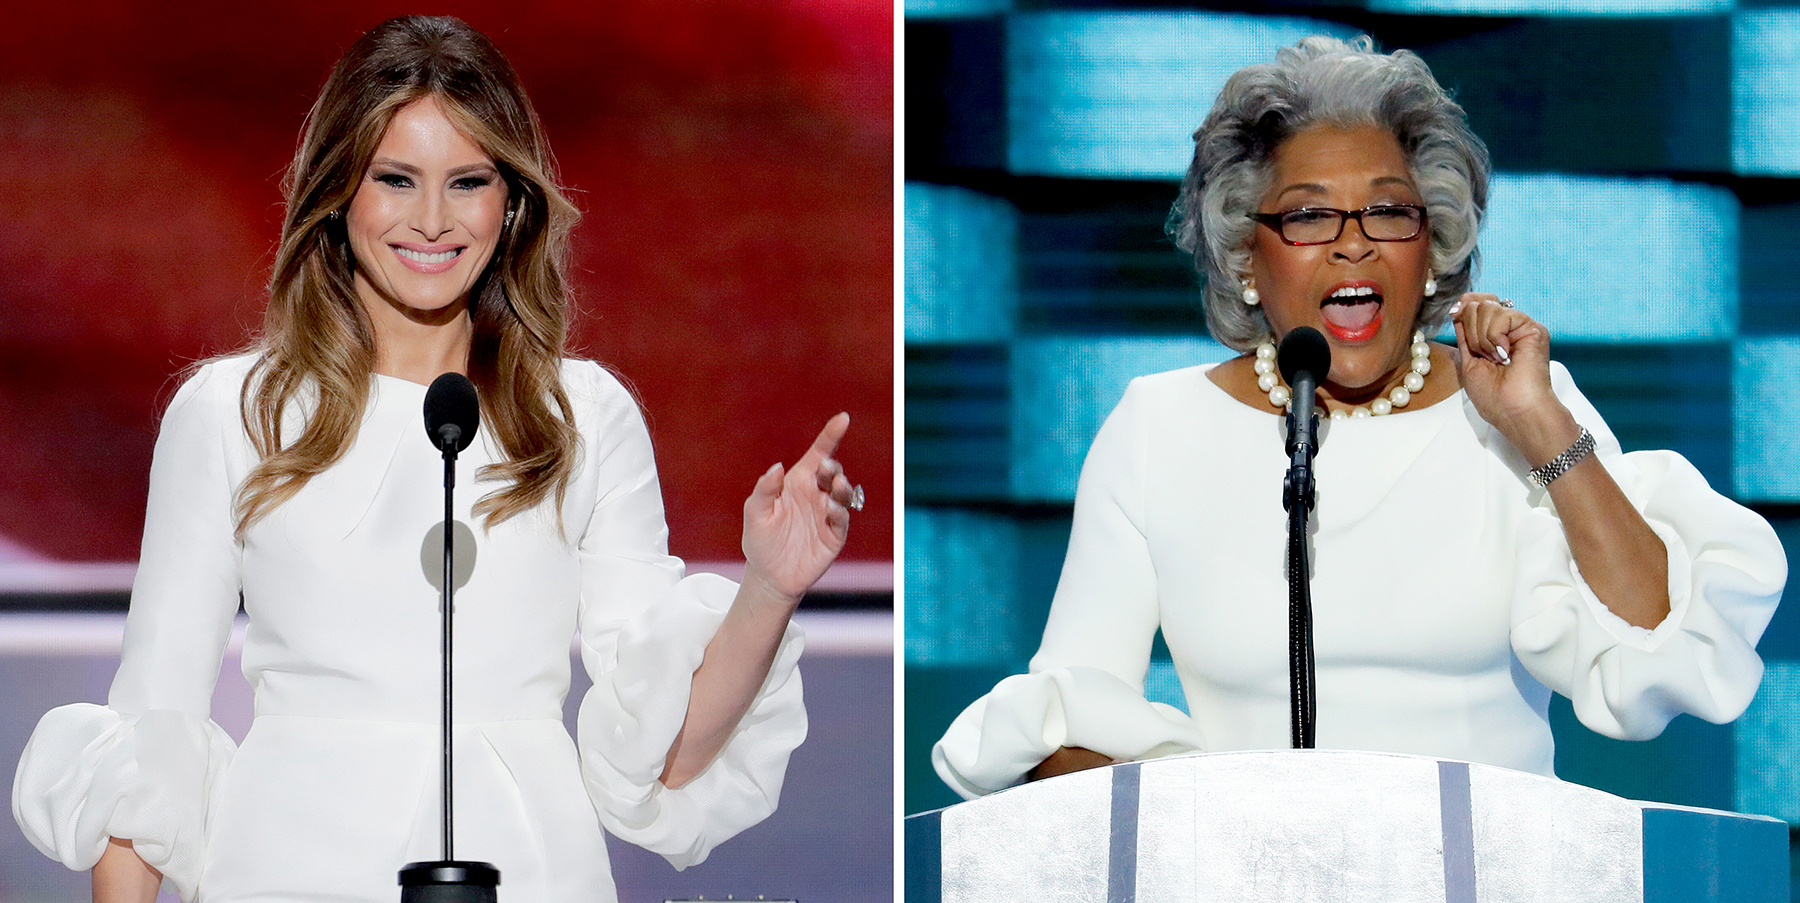 Melania Trump speaks at the Republican National Convention in Cleveland, and U.S. Rep. Joyce Beatty, right, speaks at the Democratic National Convention in Philadelphia.